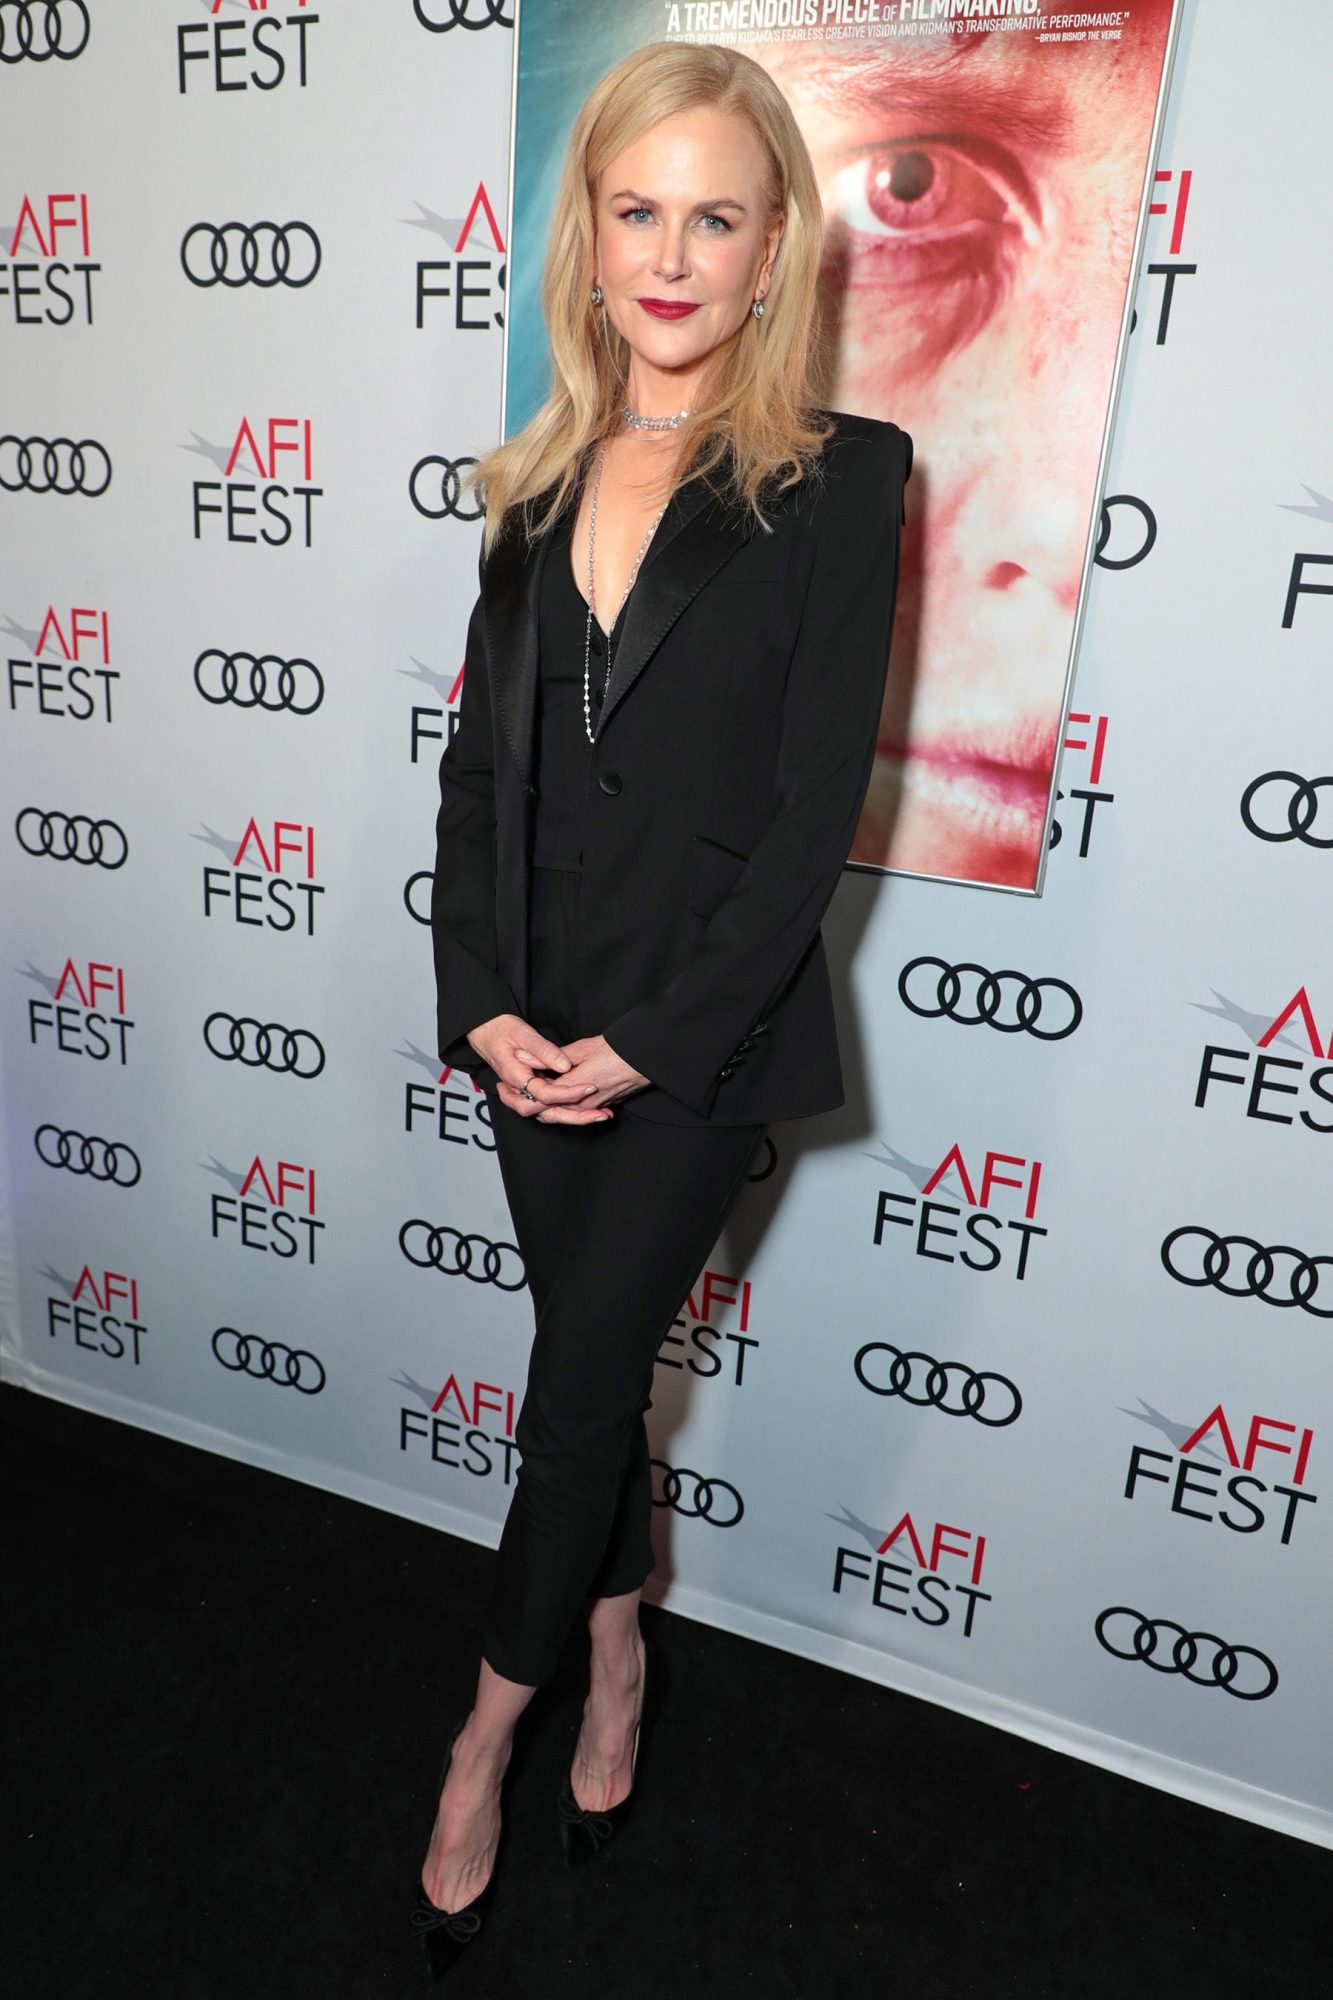 An Evening with Nicole Kidman at Annapurna Pictures 'Destroyer' special screening at AFI Fest 2018, Los Angeles, CA, USA - 13 November 2018